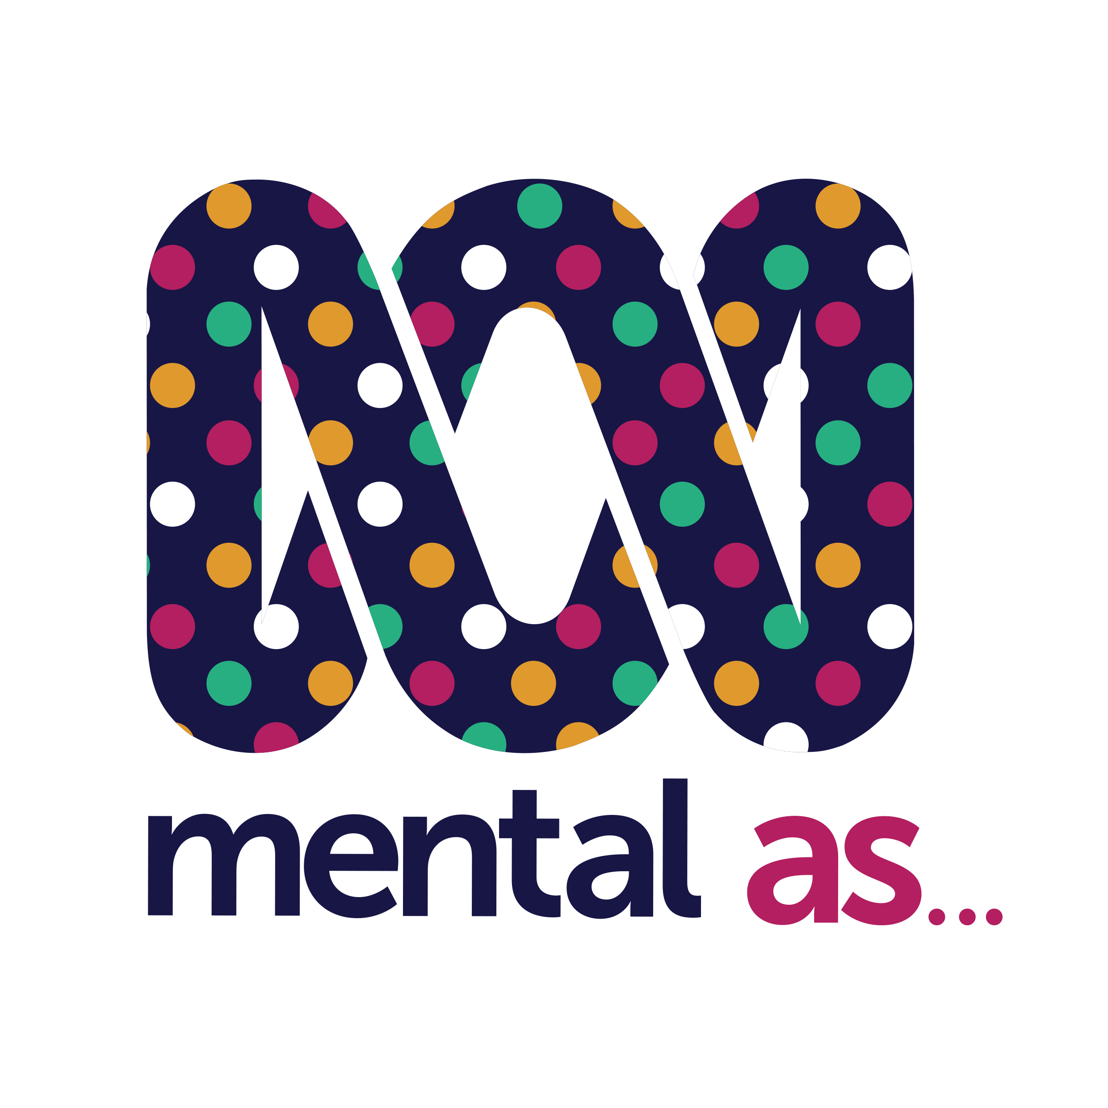 Australian Story: All in the Mind airs as part of ABC's Mental As...